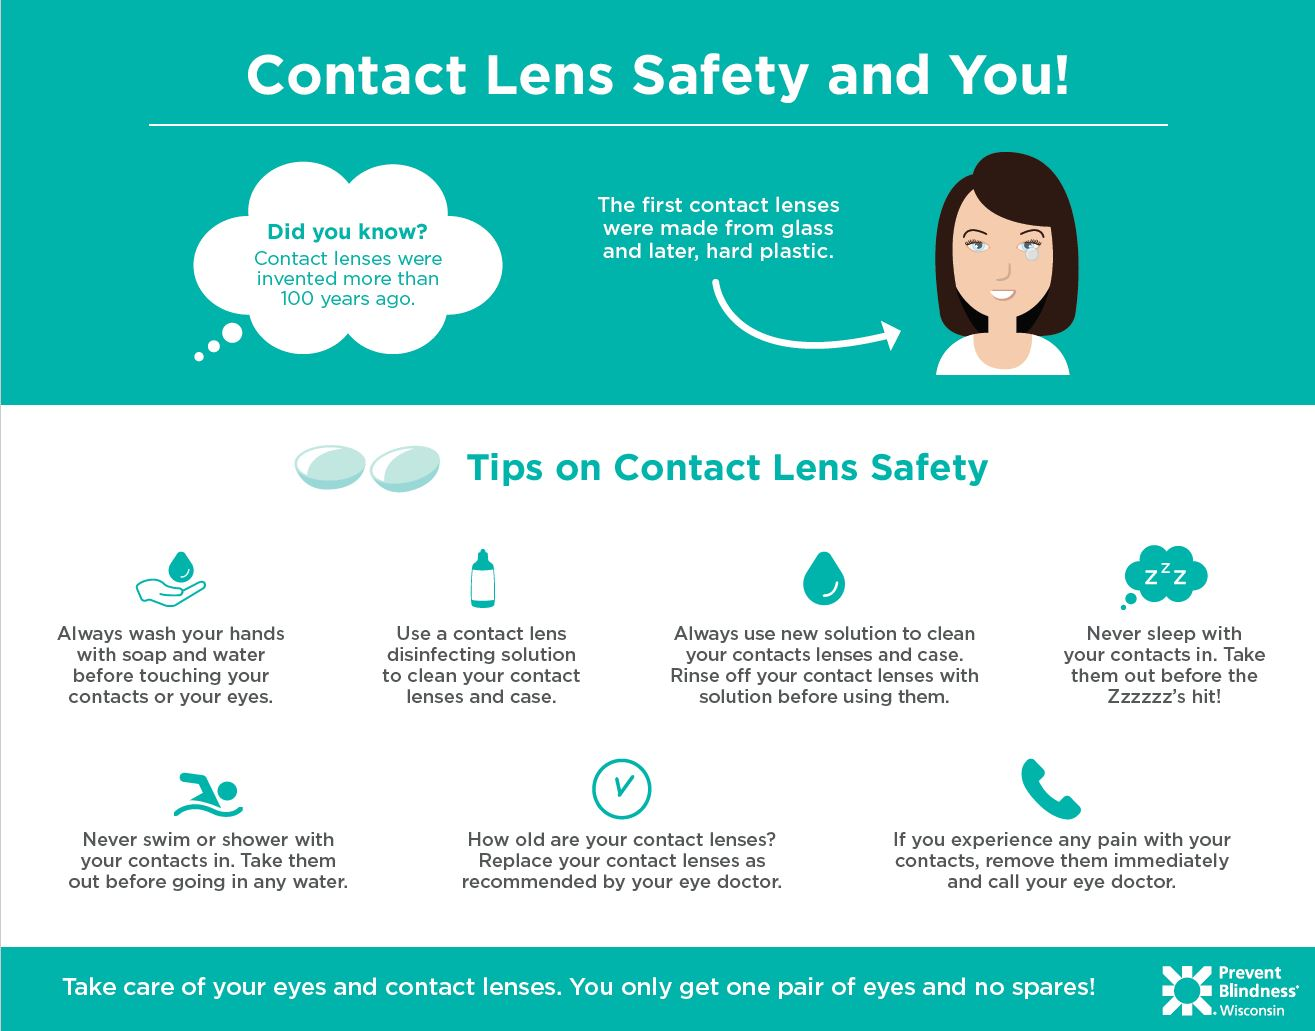 Contact Lens Safety Pic